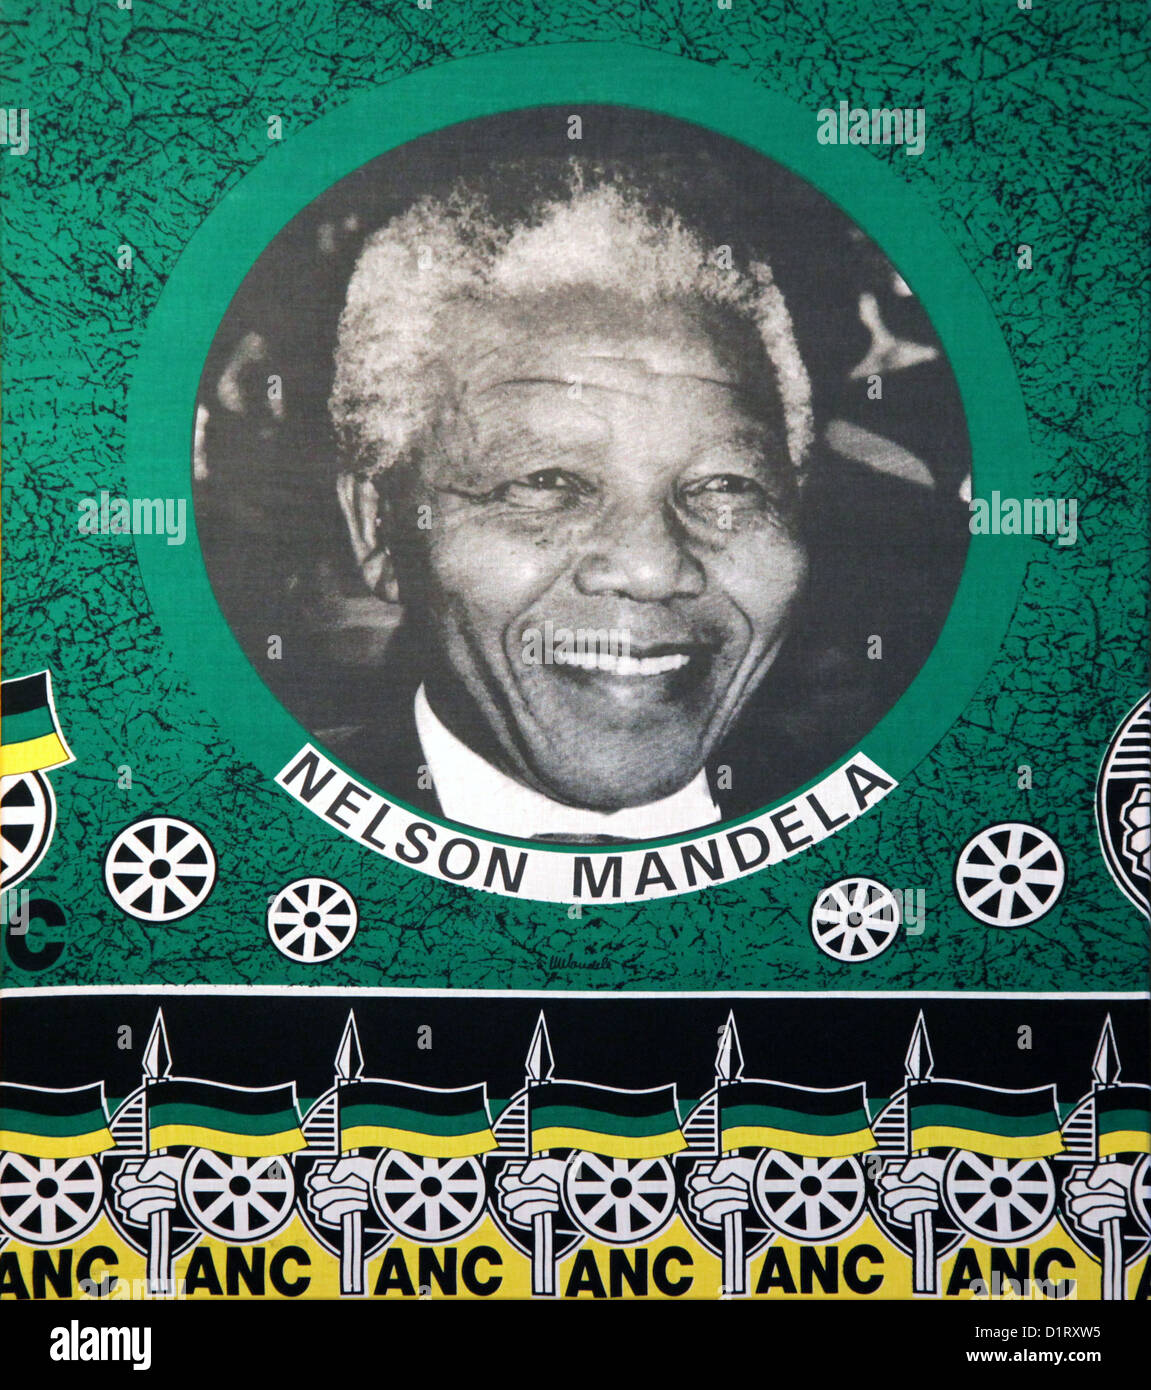 Nelson Mandela,flag of the African National Congress ANC,South Africa, banner, politics, - Stock Image